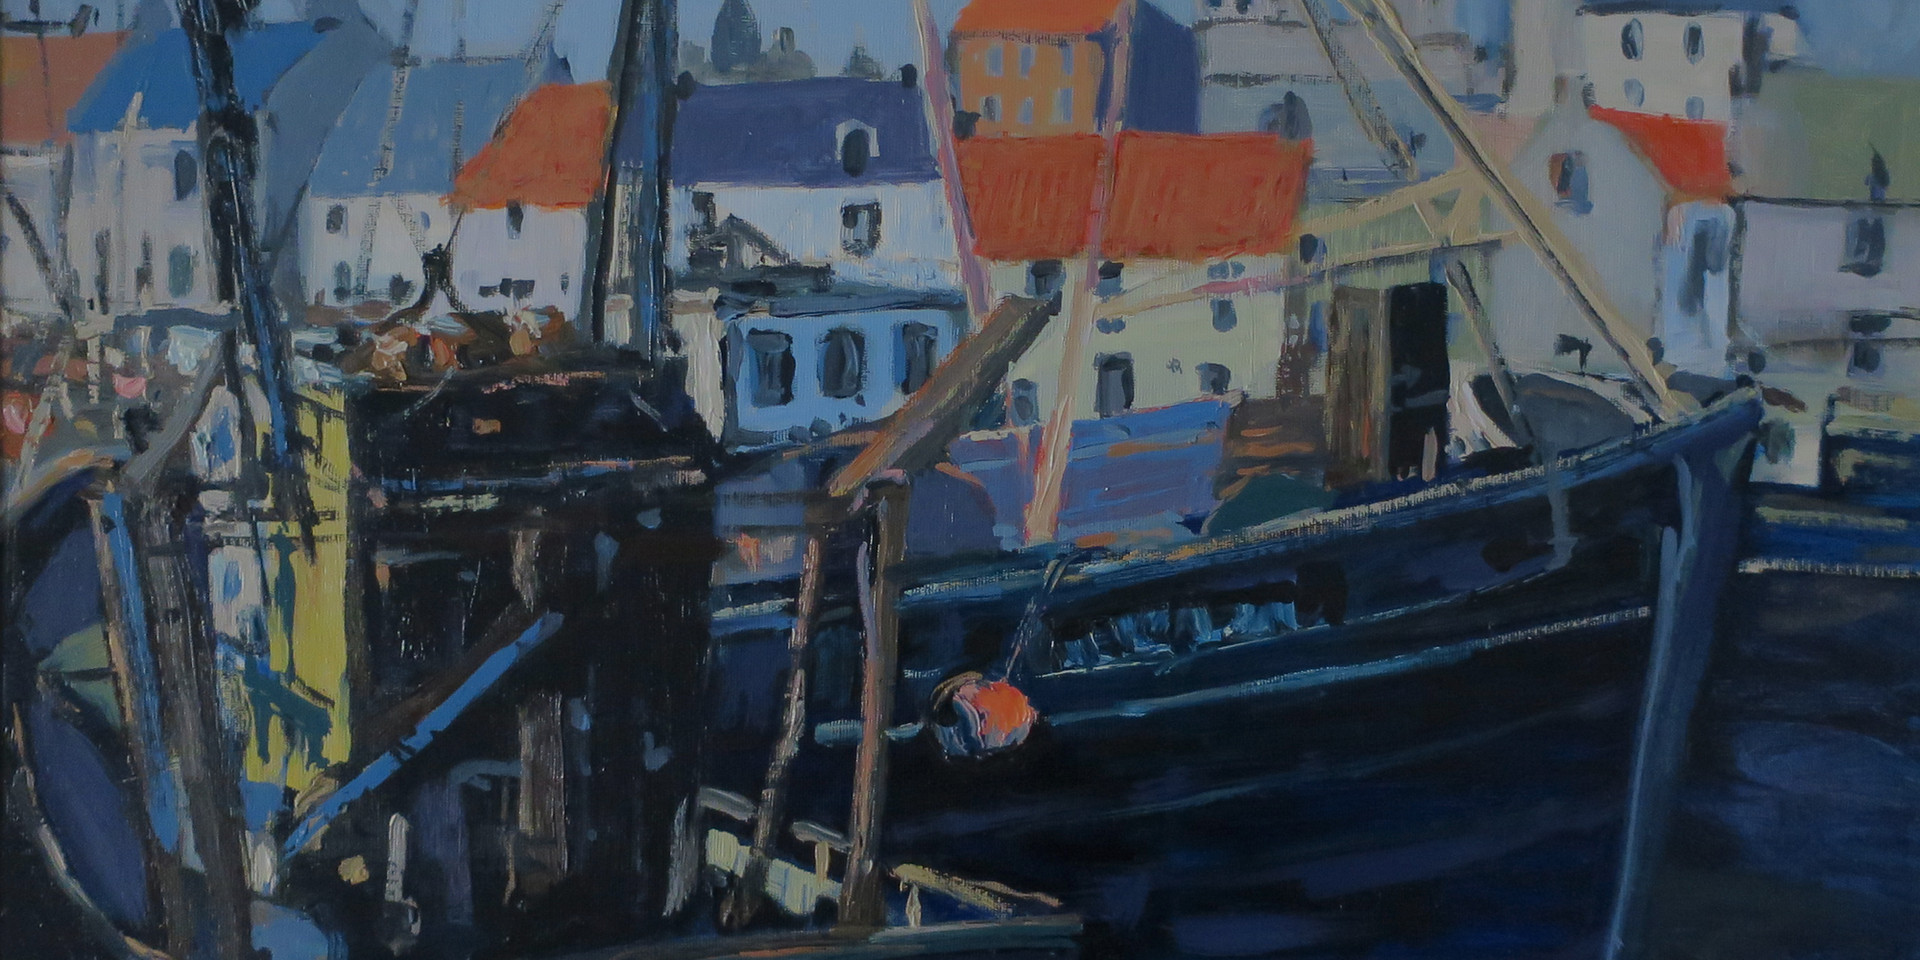 Boats in Pittenweem Harbour.jpg